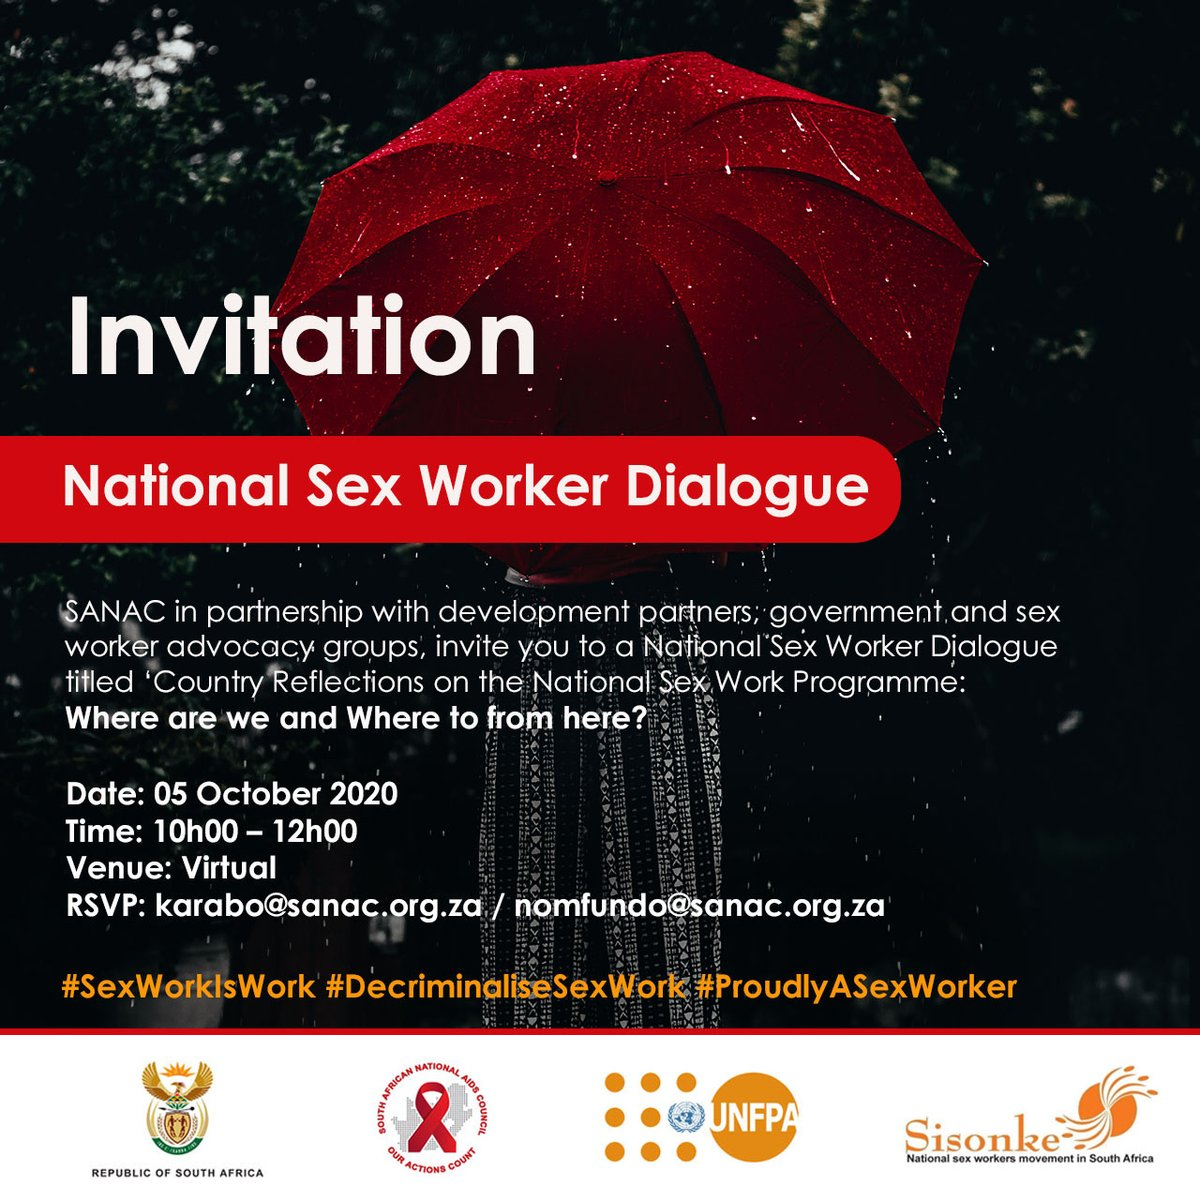 #SexWorkIsWork Kholi: law enforcement should stop using safe sex commodities such as condoms carried by sex workers as grounds for arrest or victimisation. No law stipulates that it's illegal to carry condoms, she says.